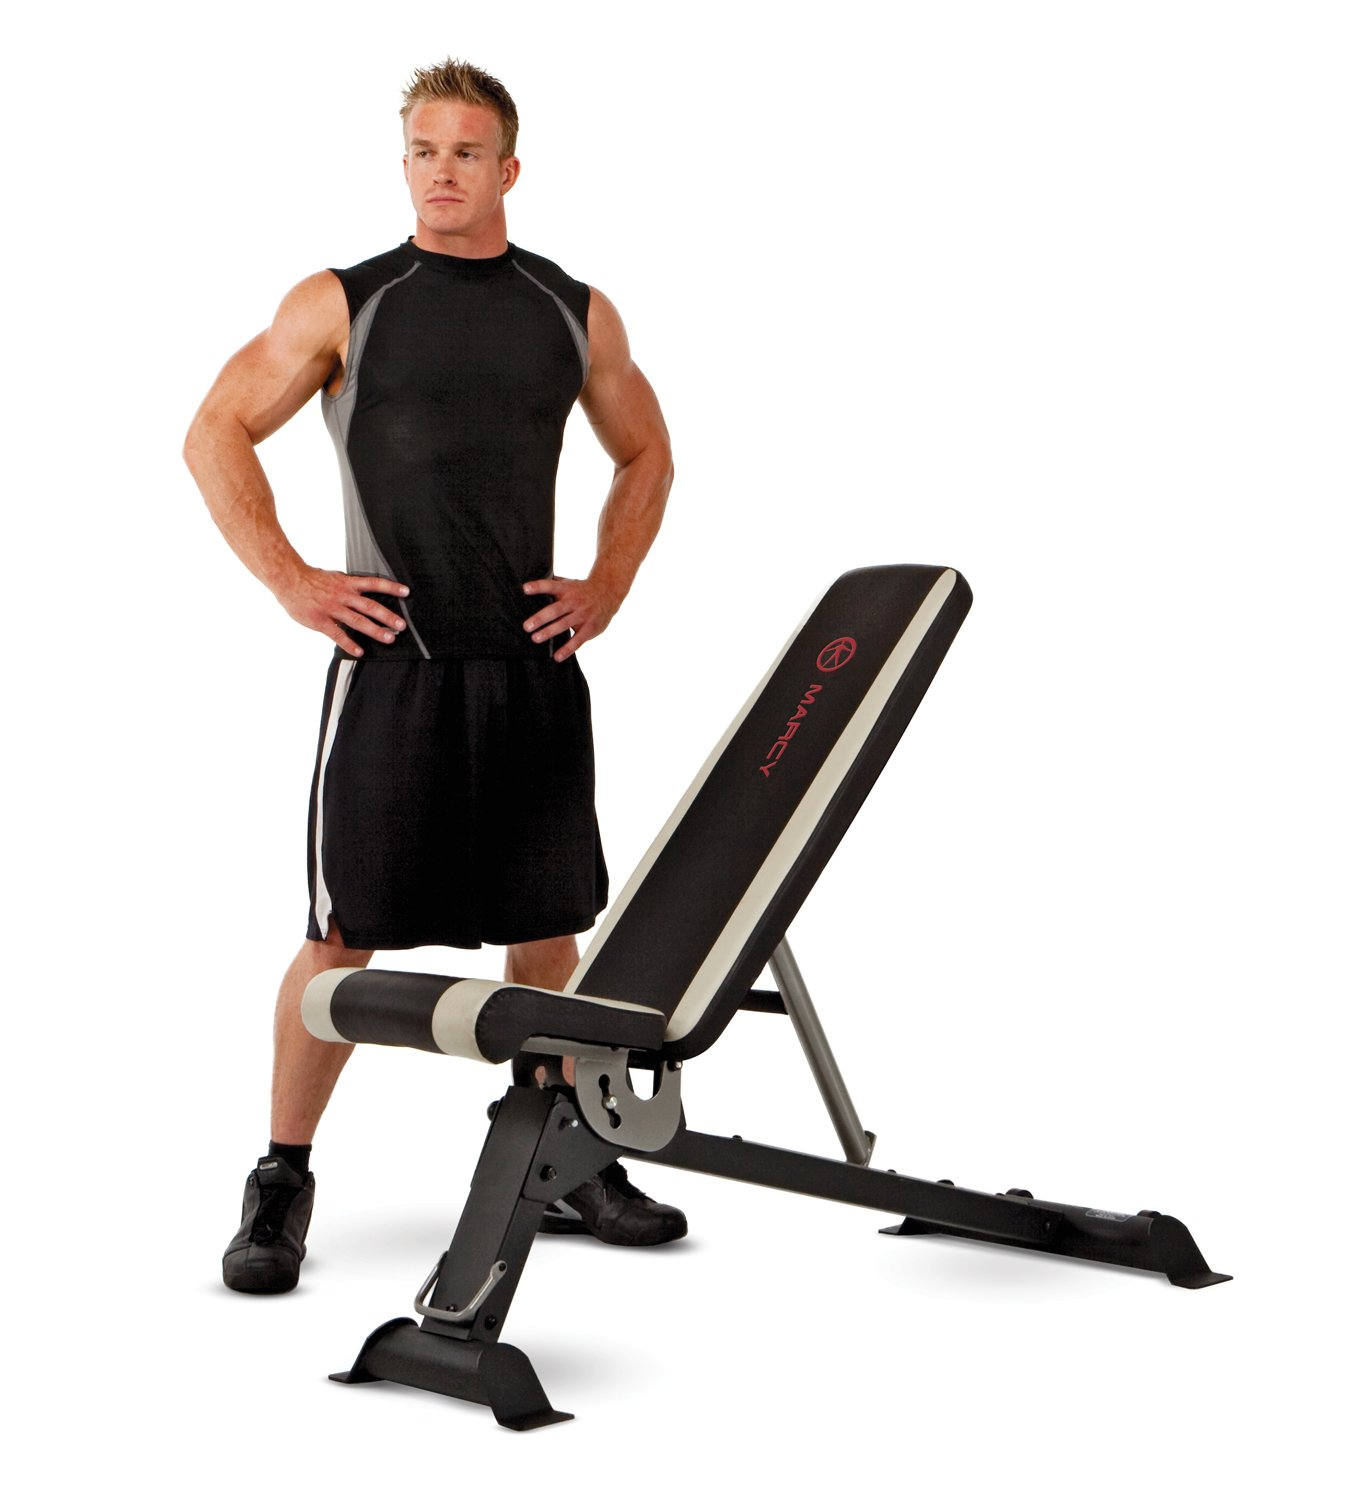 Marcy Adjustable Utility Bench for Home Gym Workout SB-670 by Marcy